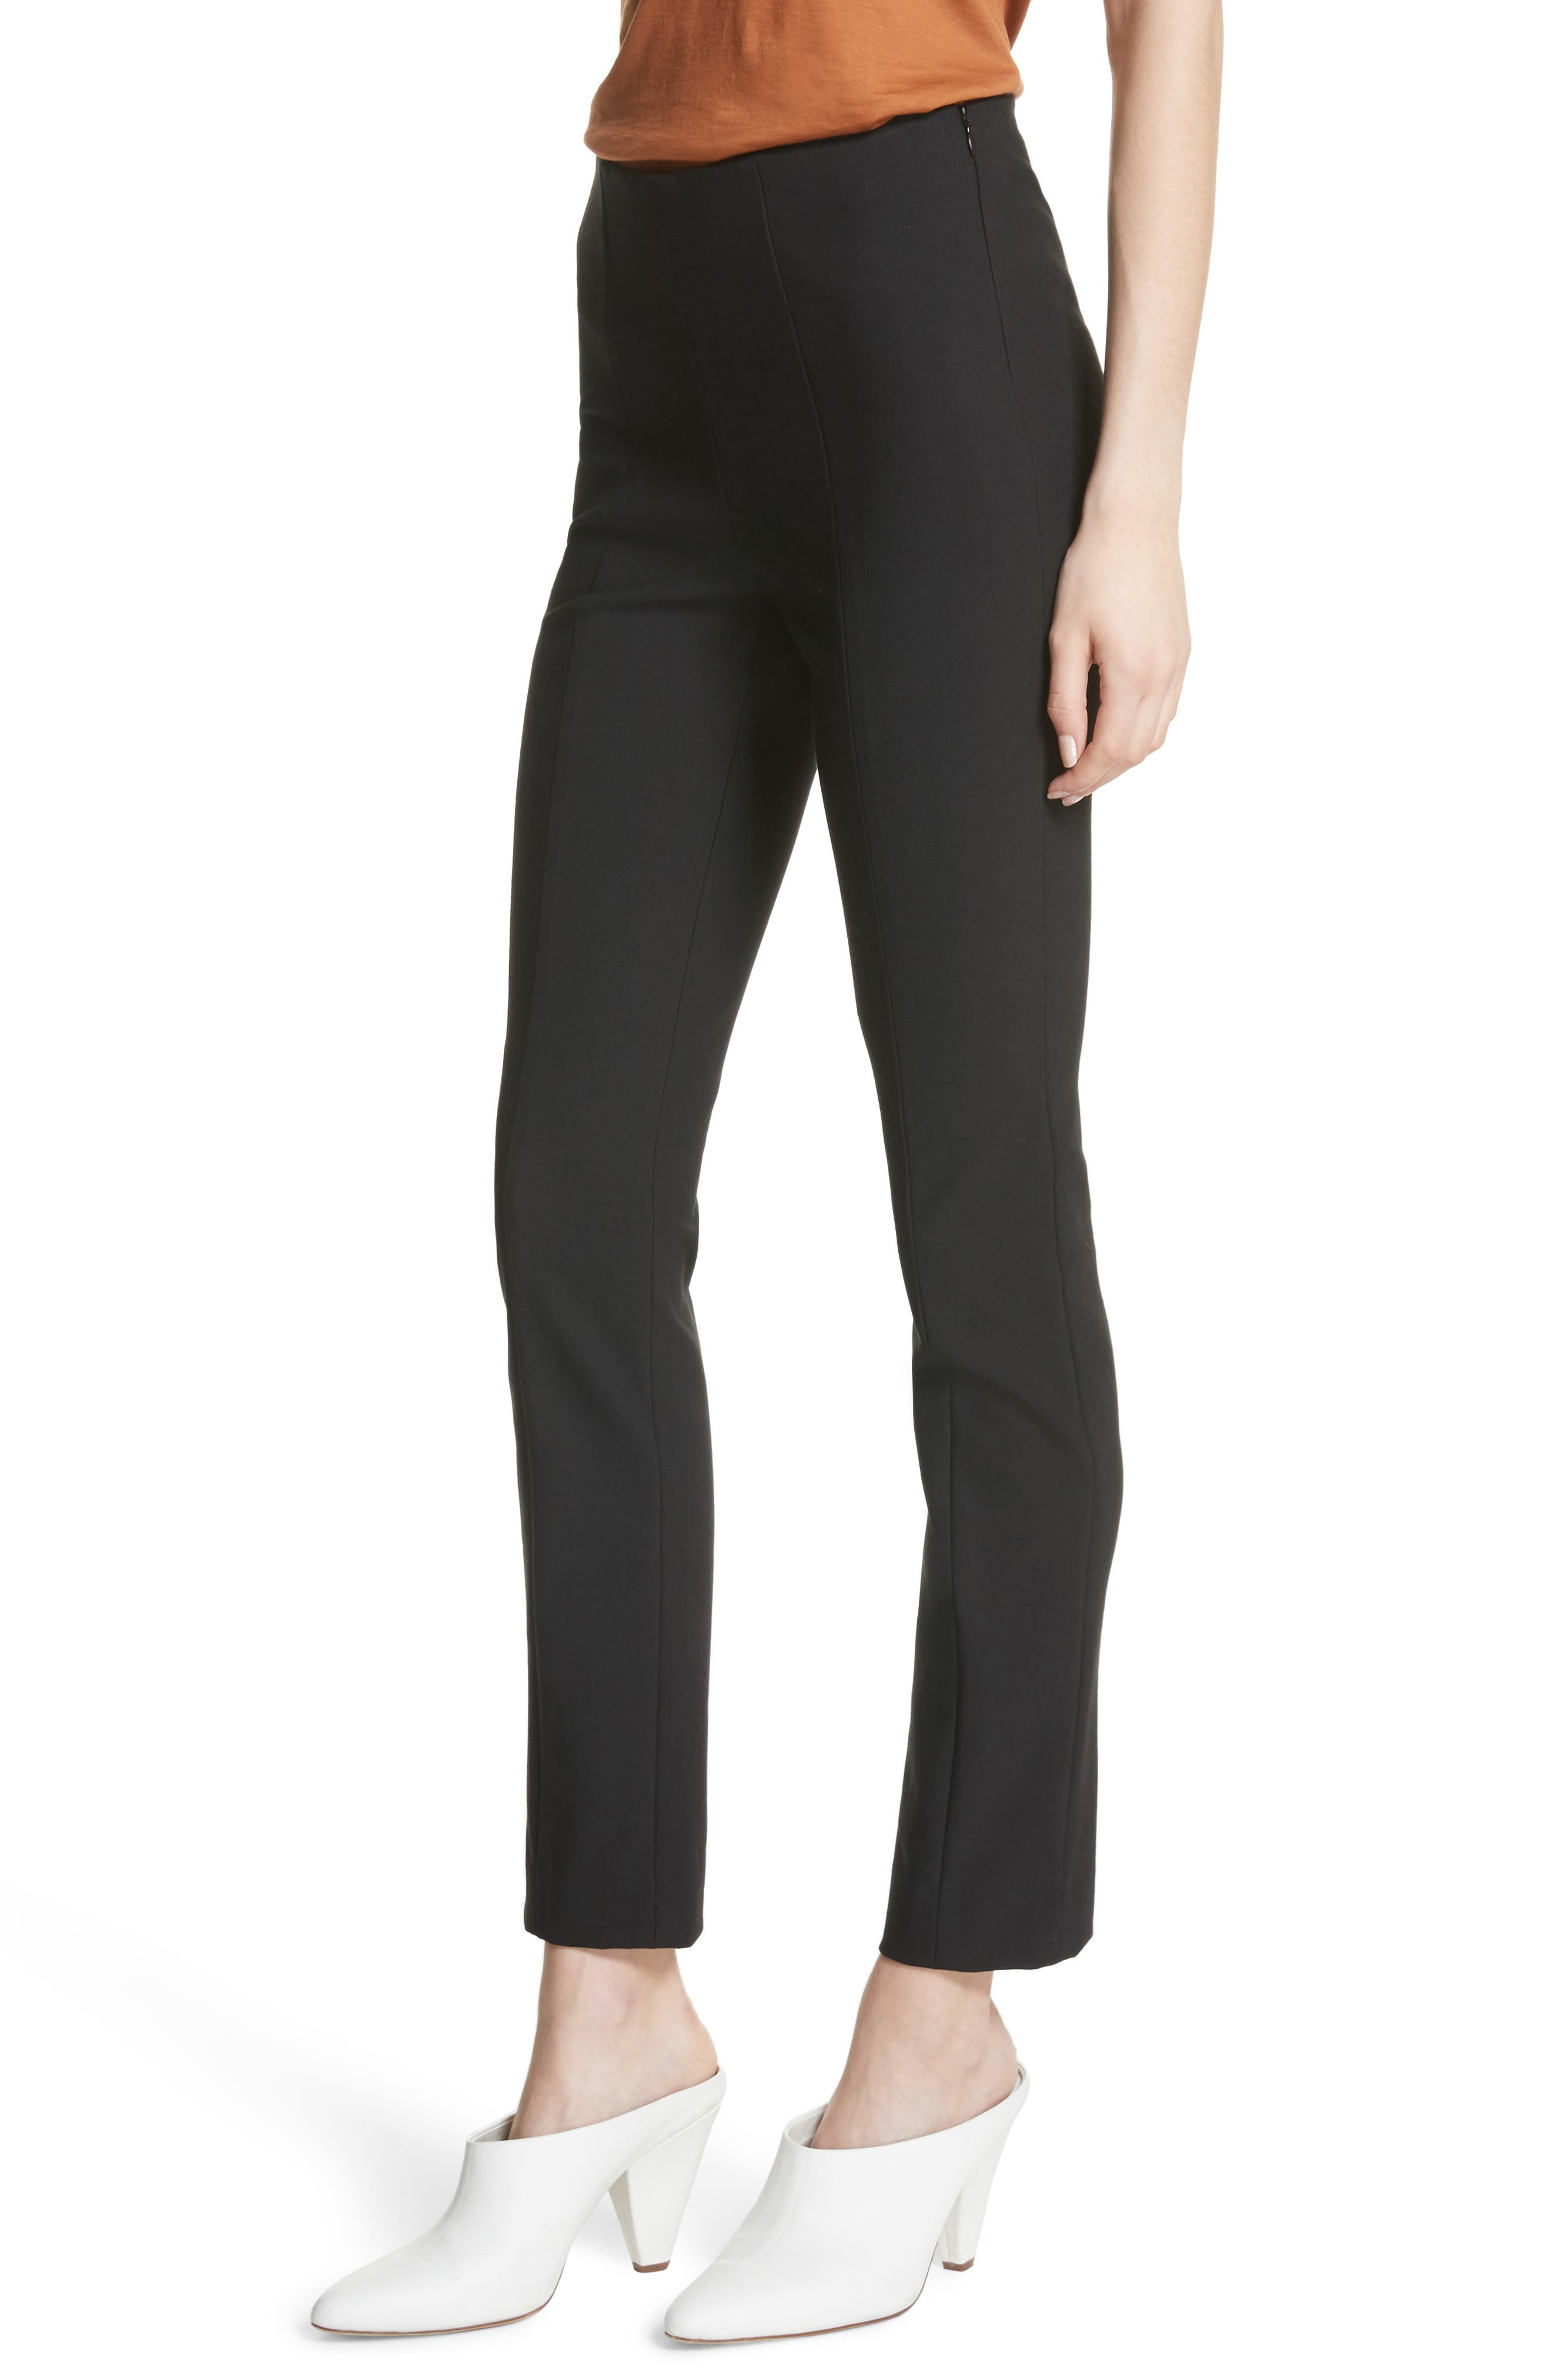 High Waist Leggings,                             Alternate thumbnail 4, color,                             001